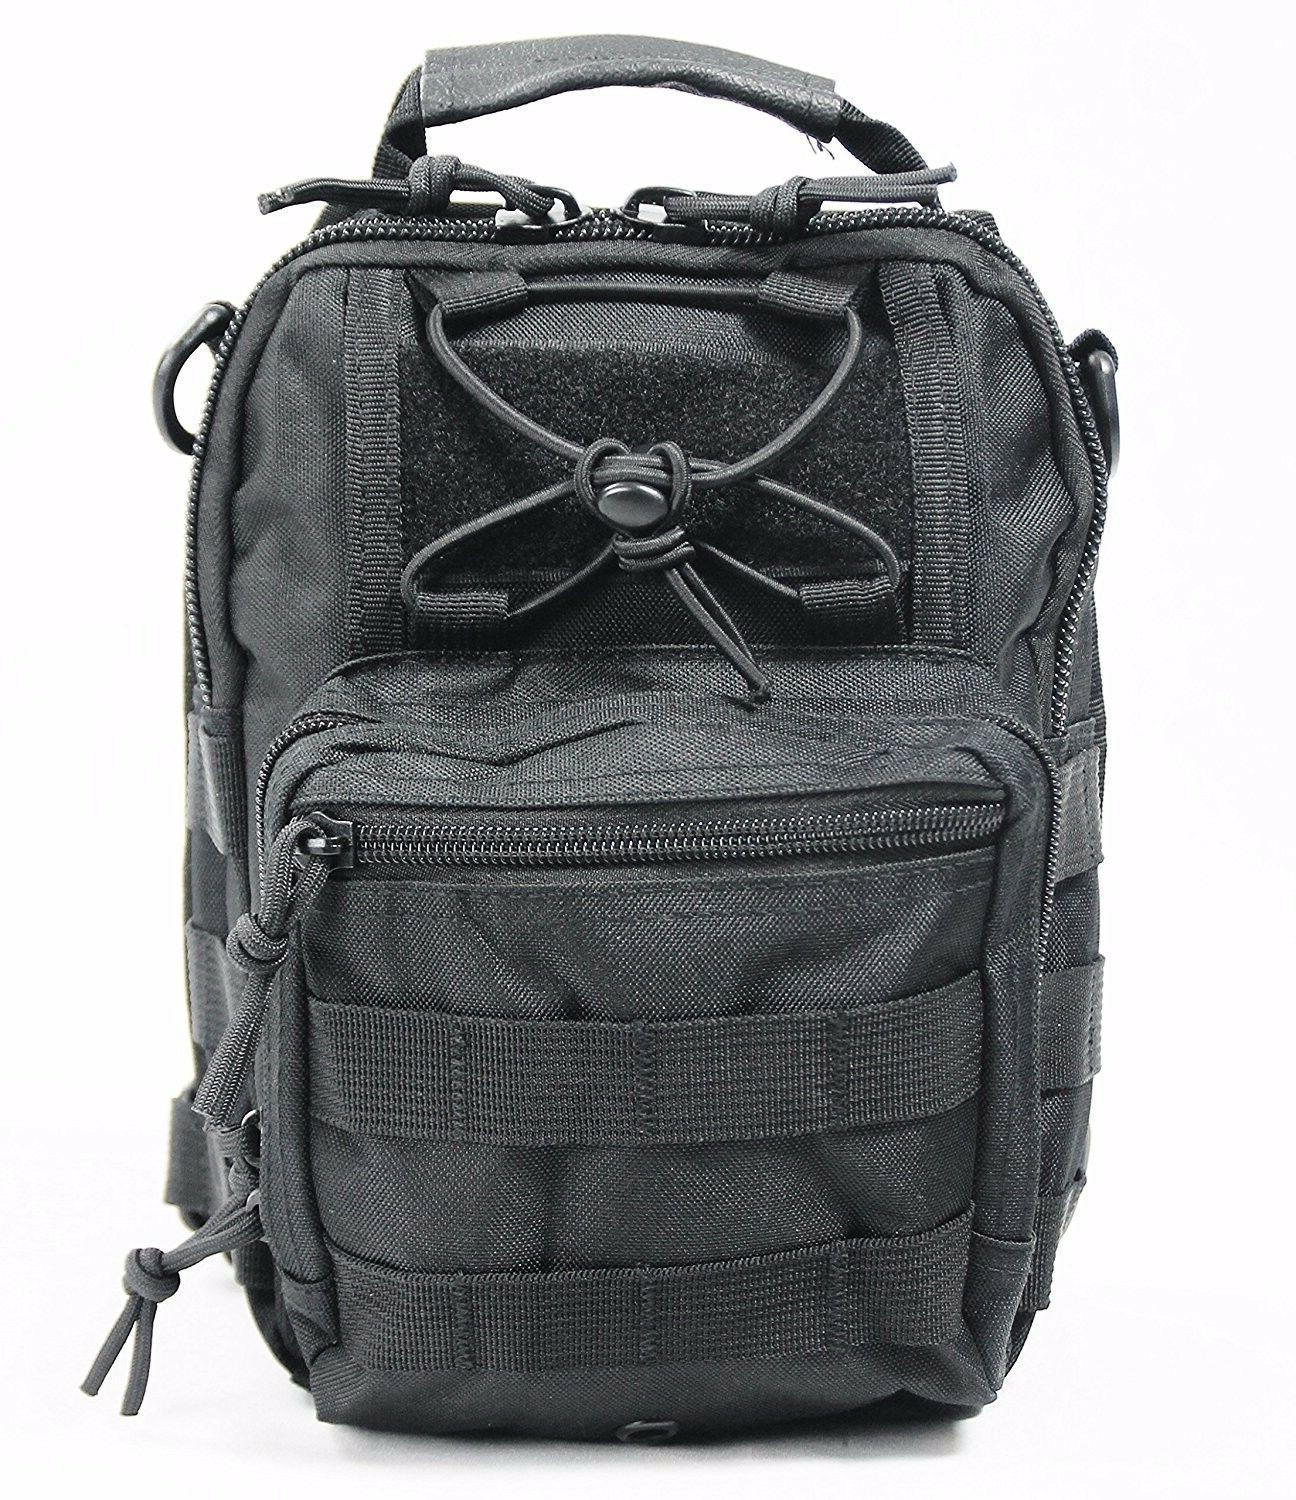 Small Compact Back Pack Pack Camera Bag Black